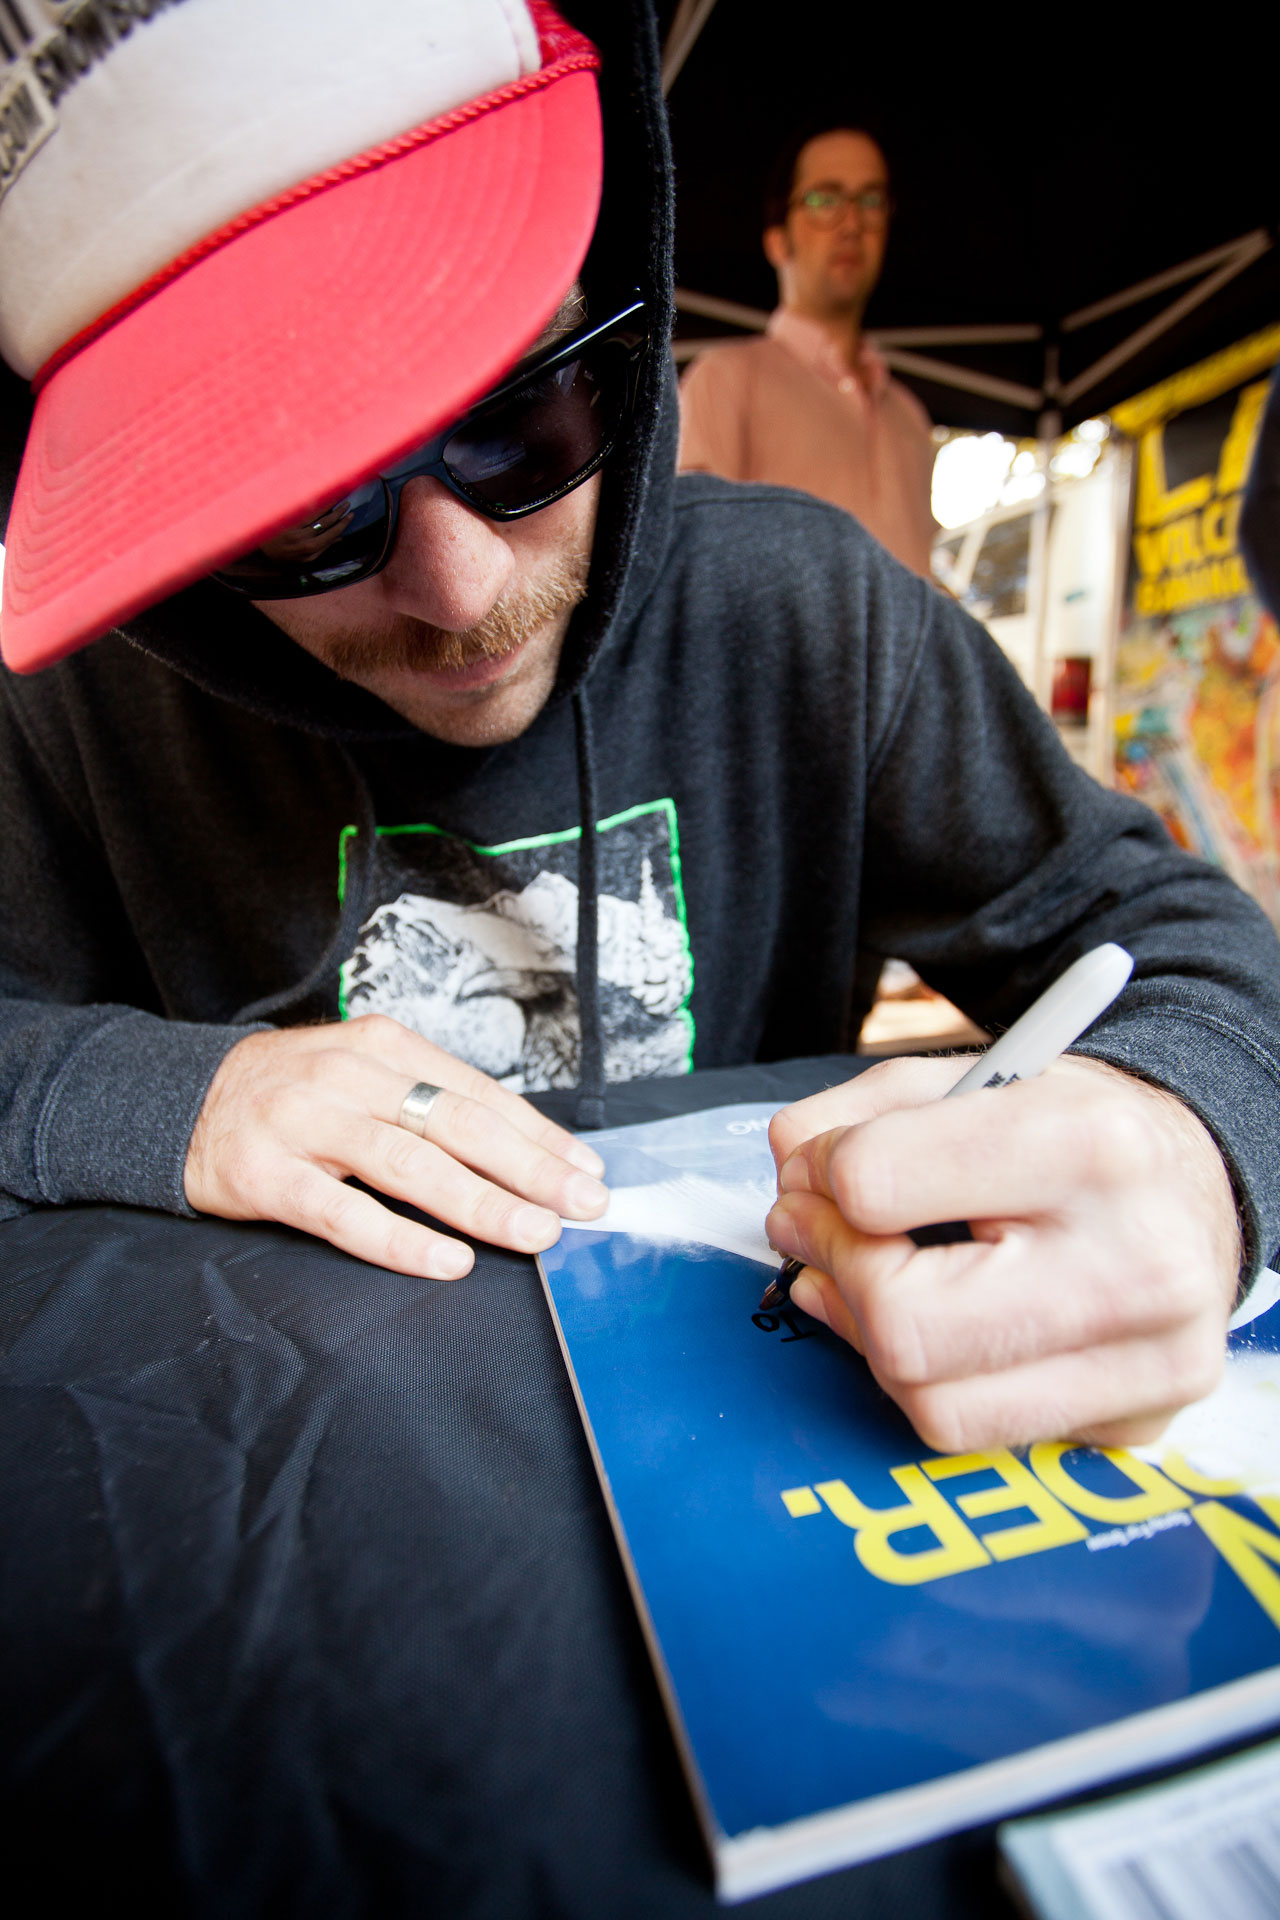 Various Northwest pros were here to hang out and sign some autographs for fans. Blair Habenicht decorates his recent cover of Snowboarder mag.